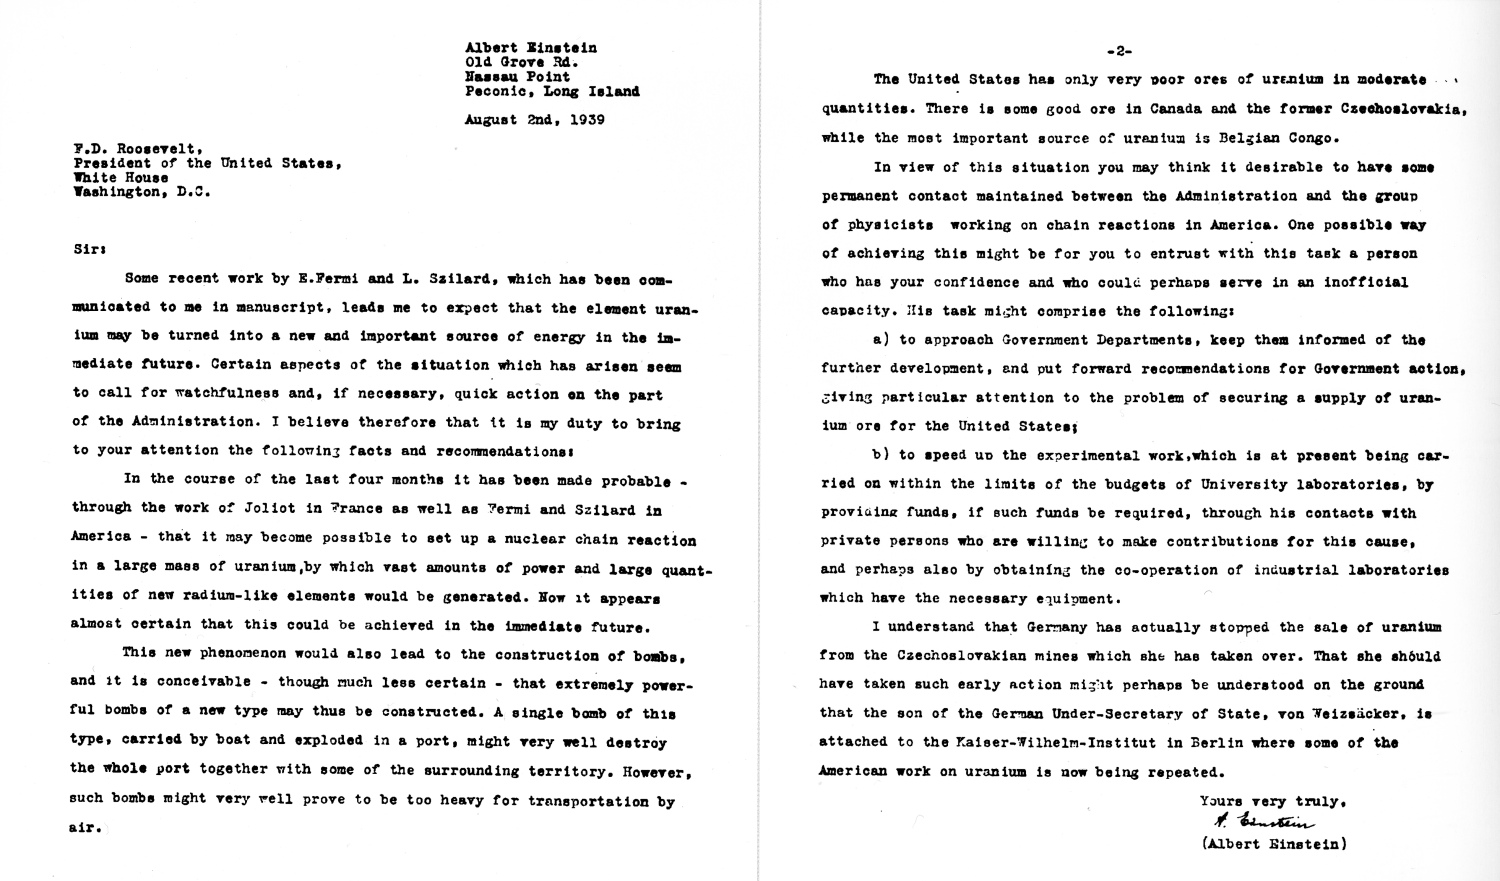 Letter from Einstein to Roosevelt